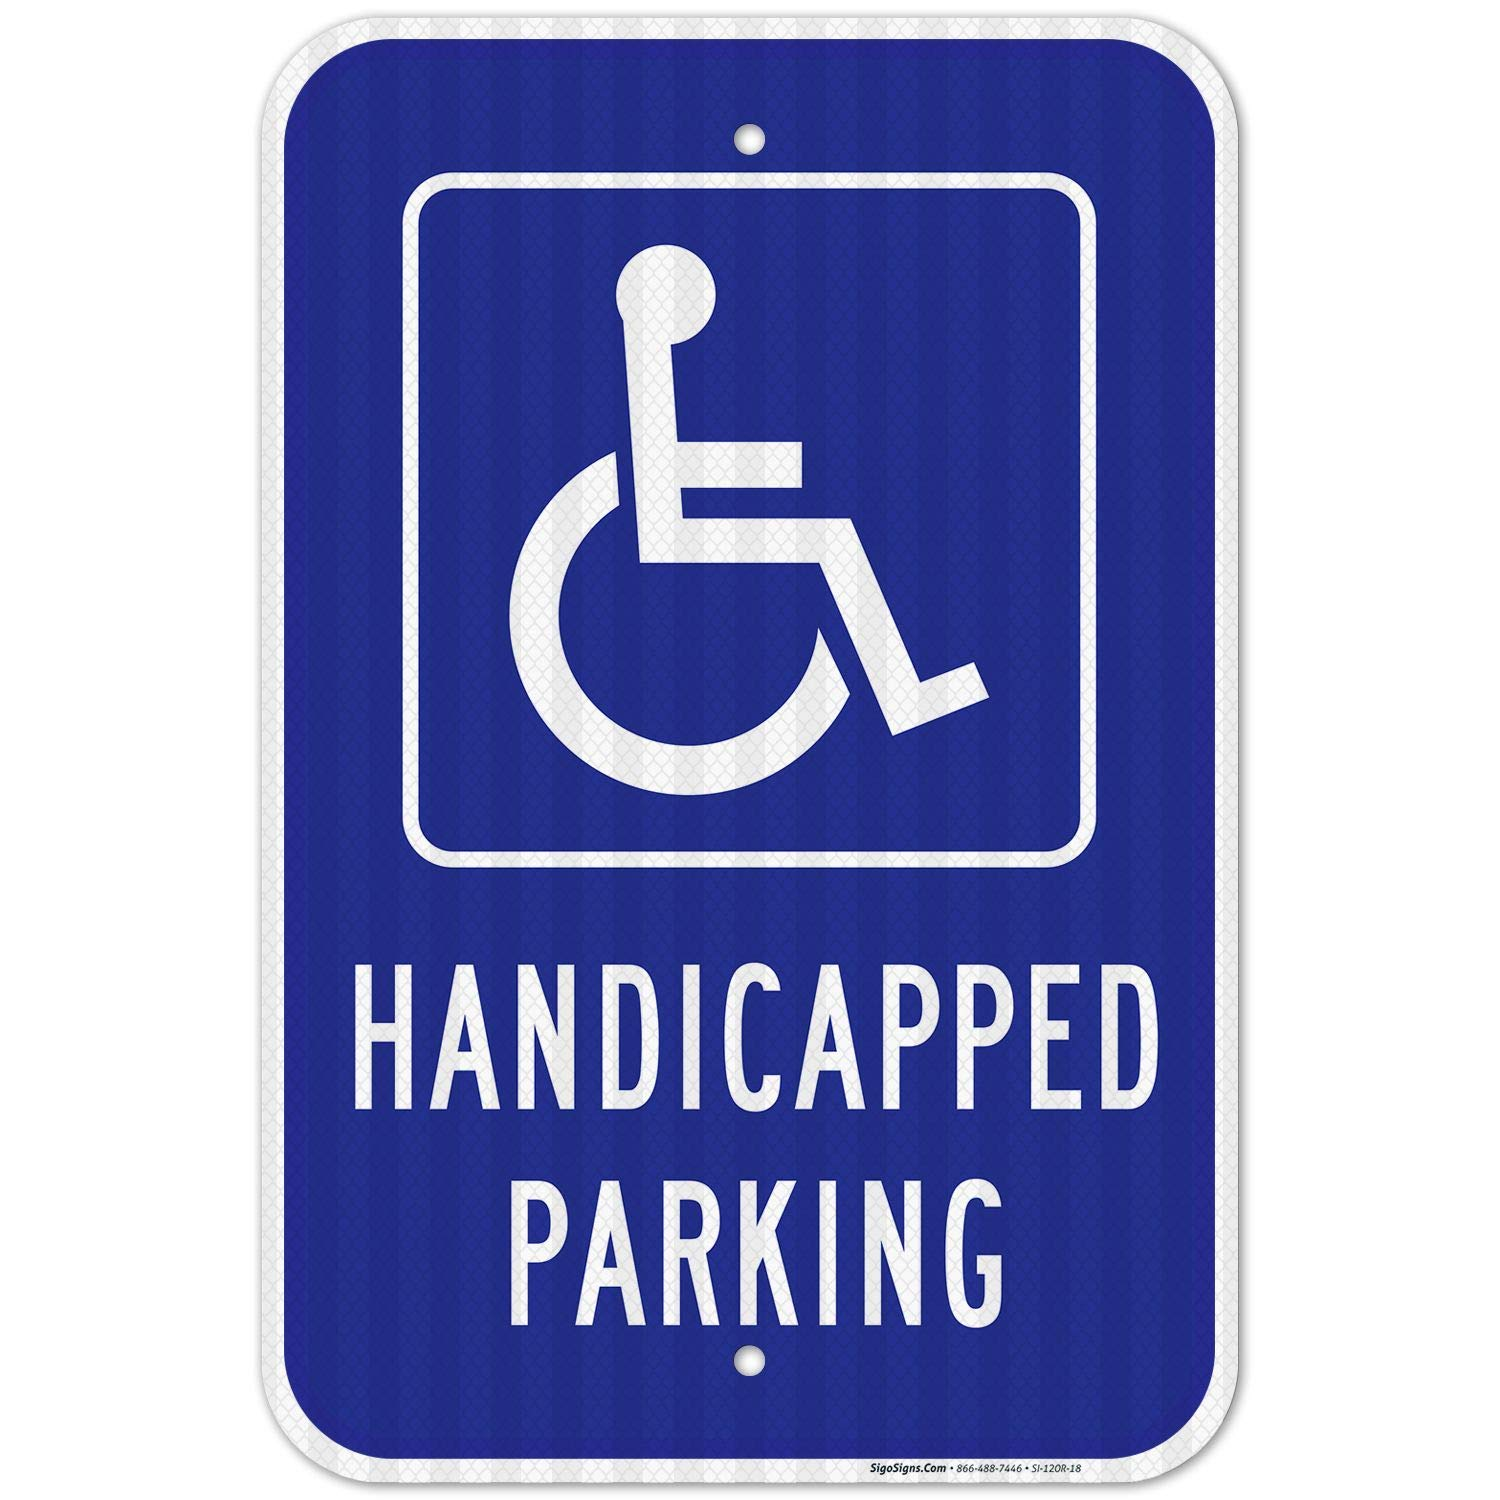 HANDICAP LOGO  METAL ALUMINUM CAR LICENSE PLATE TAG HANDICAP SIGN